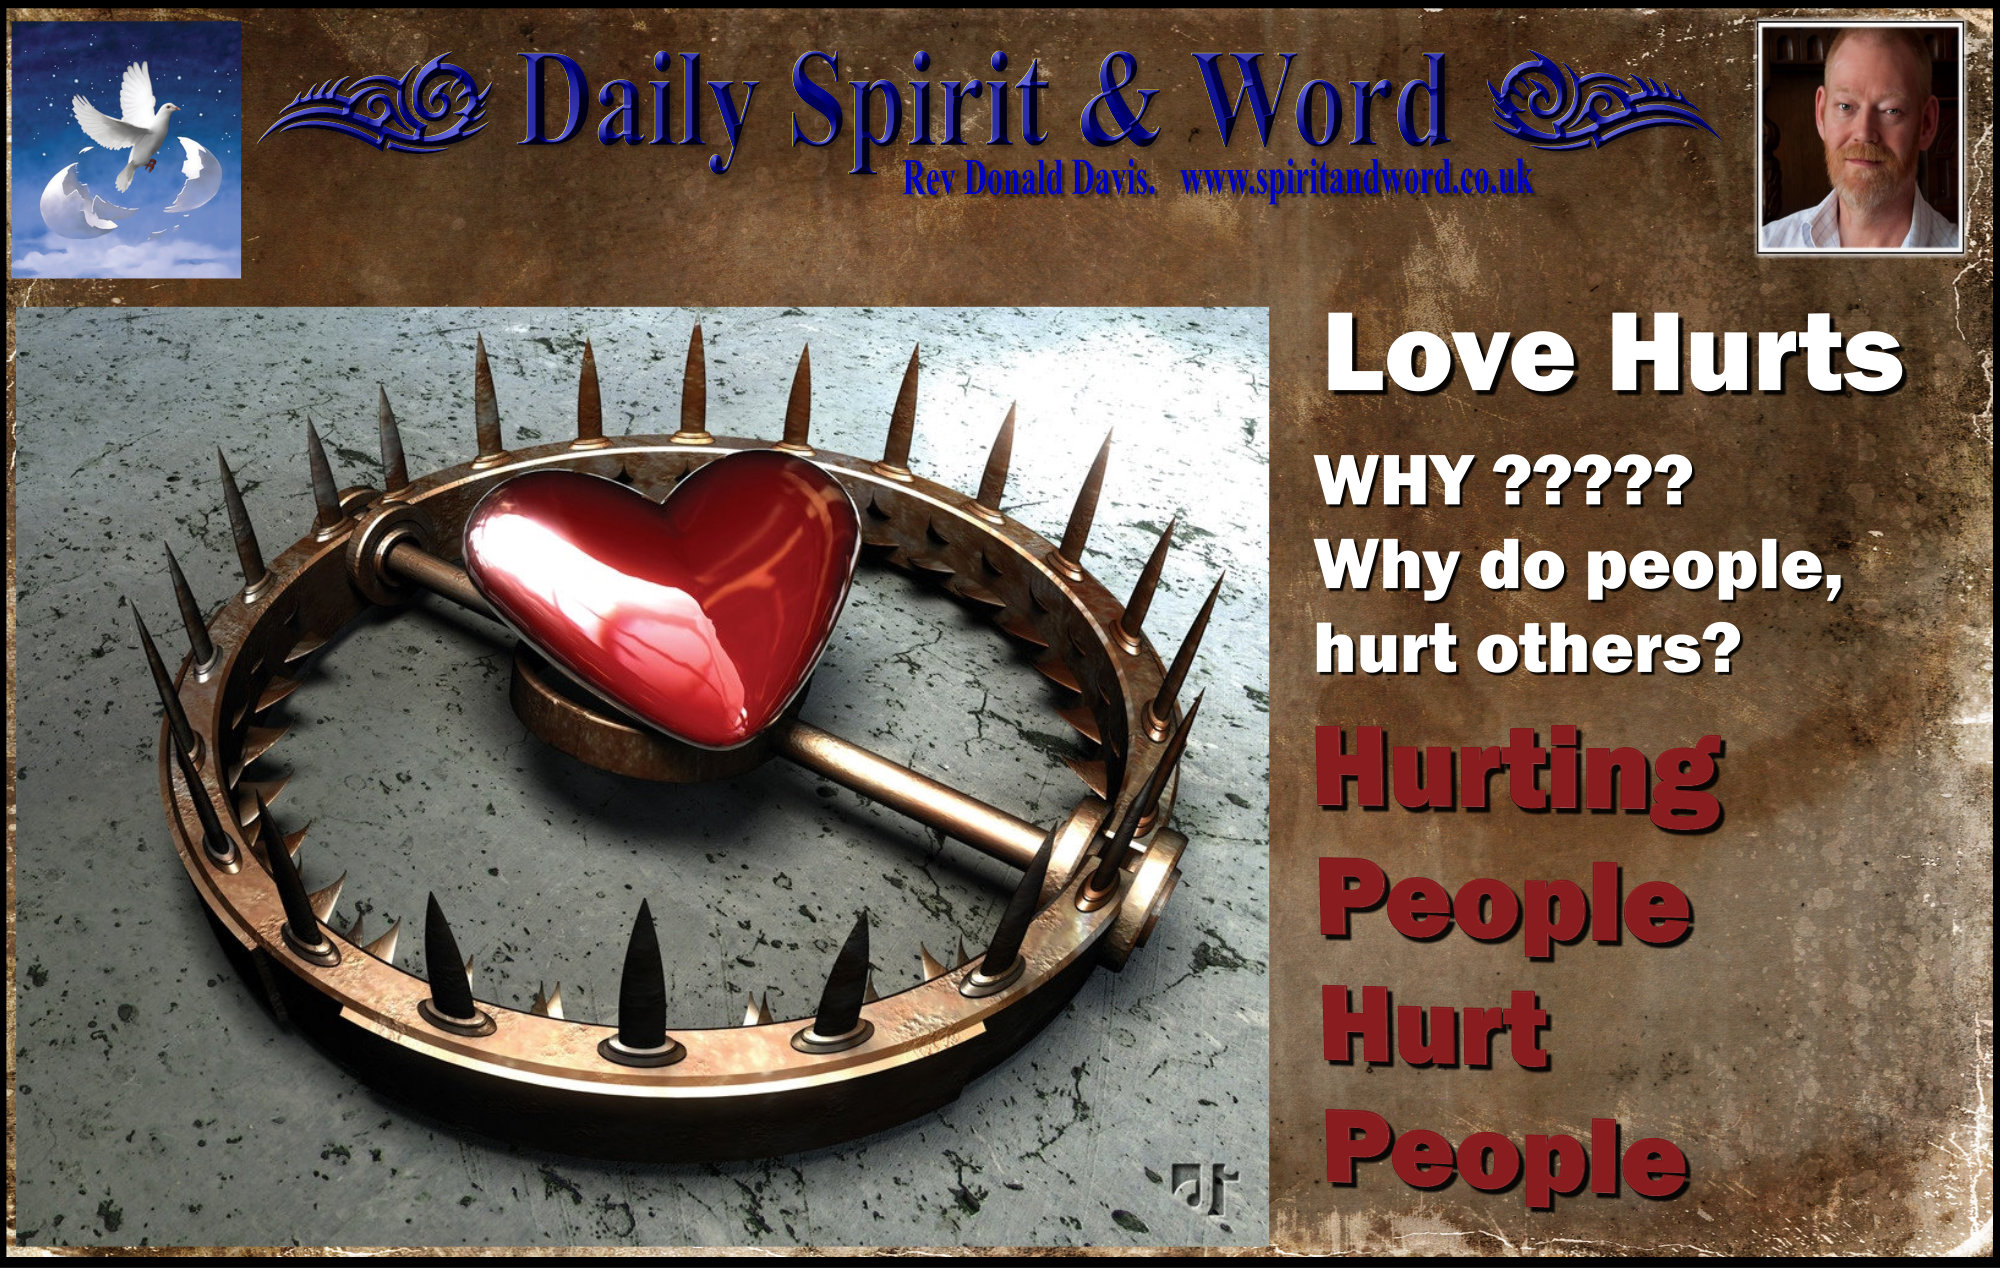 Hurting People Hurt People Daily Spirit And Word